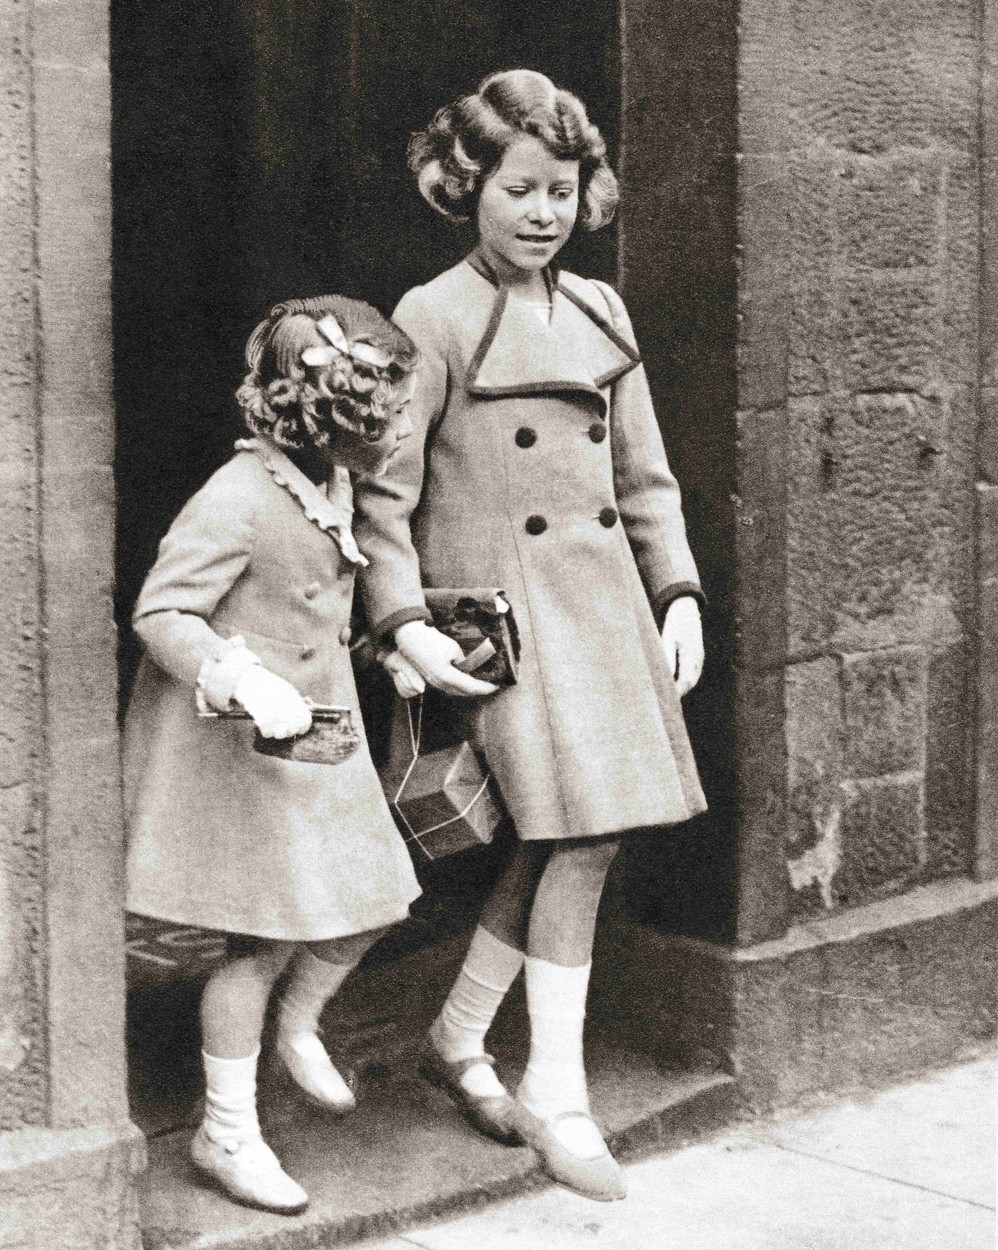 September 6, 2017: Princess Elizabeth, right, and her sister Princess Margaret in 1935.  Princess Elizabeth of York, future Elizabeth II,  born 1926. Queen of the United Kingdom. Princess Margaret, future Countess of Snowden, 1930 – 2002.  From The Coronation Book of King George VI and Queen Elizabeth, published 1937., Image: 489636770, License: Rights-managed, Restrictions: , Model Release: no, Credit line: Ken Welsh / Zuma Press / Profimedia